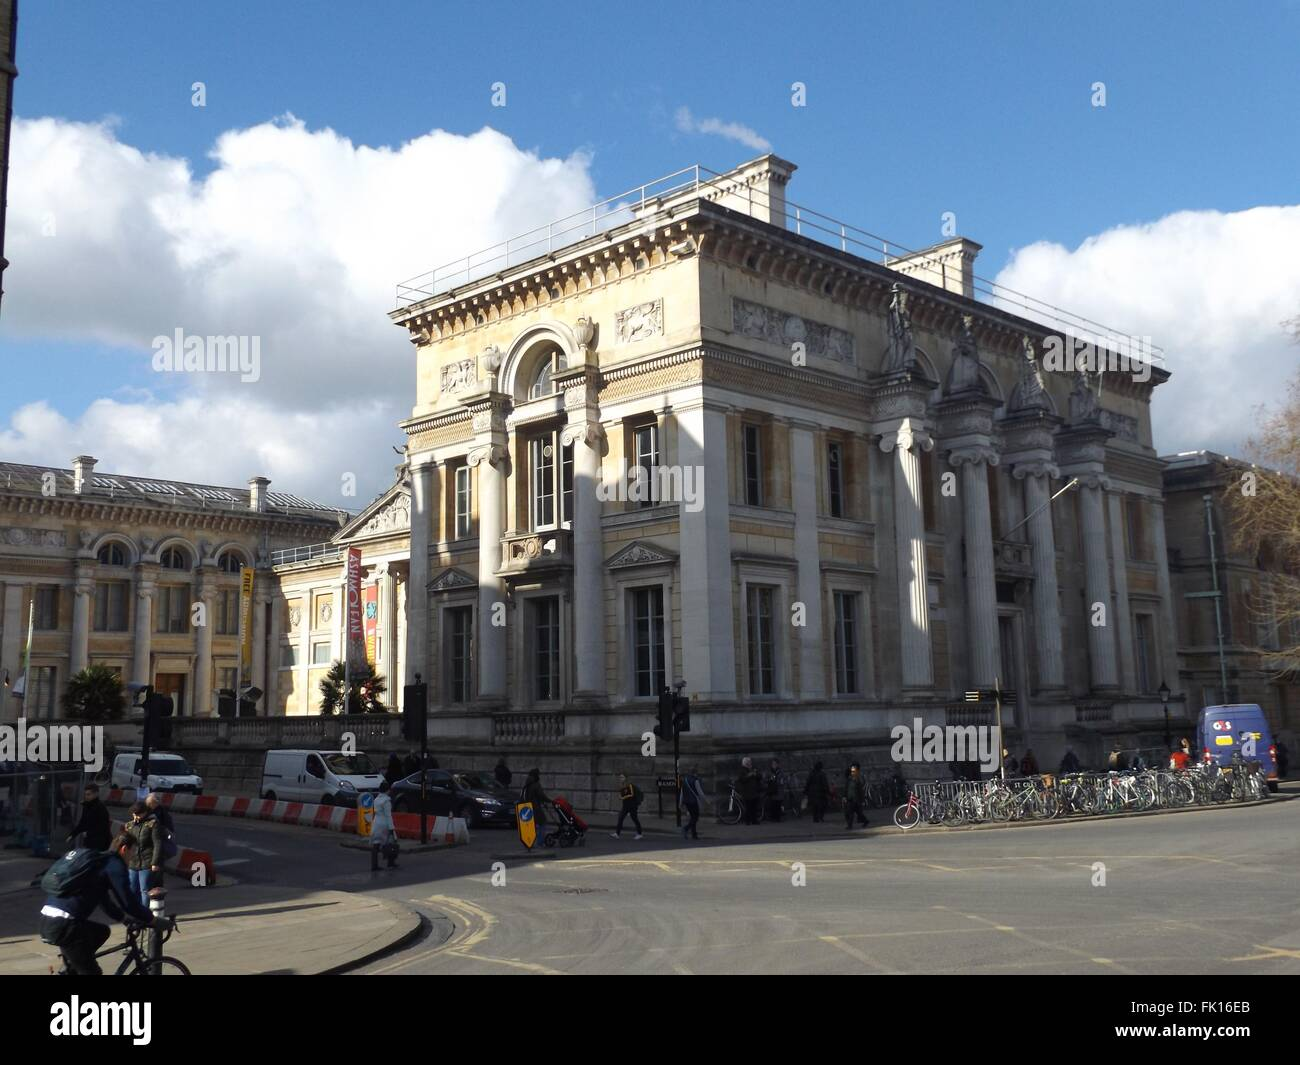 Ashmolean Museum, Oxford, UK - Stock Image